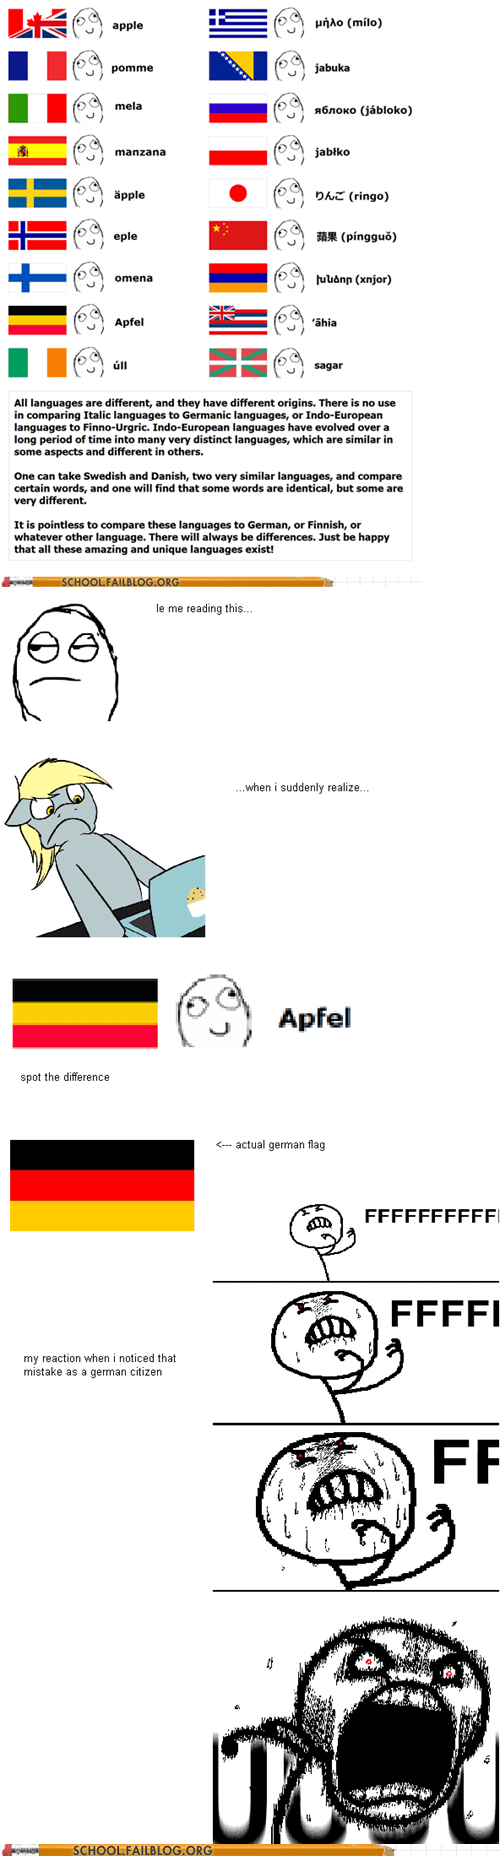 doing it wrong flags Germany wrong flag - 6463494144